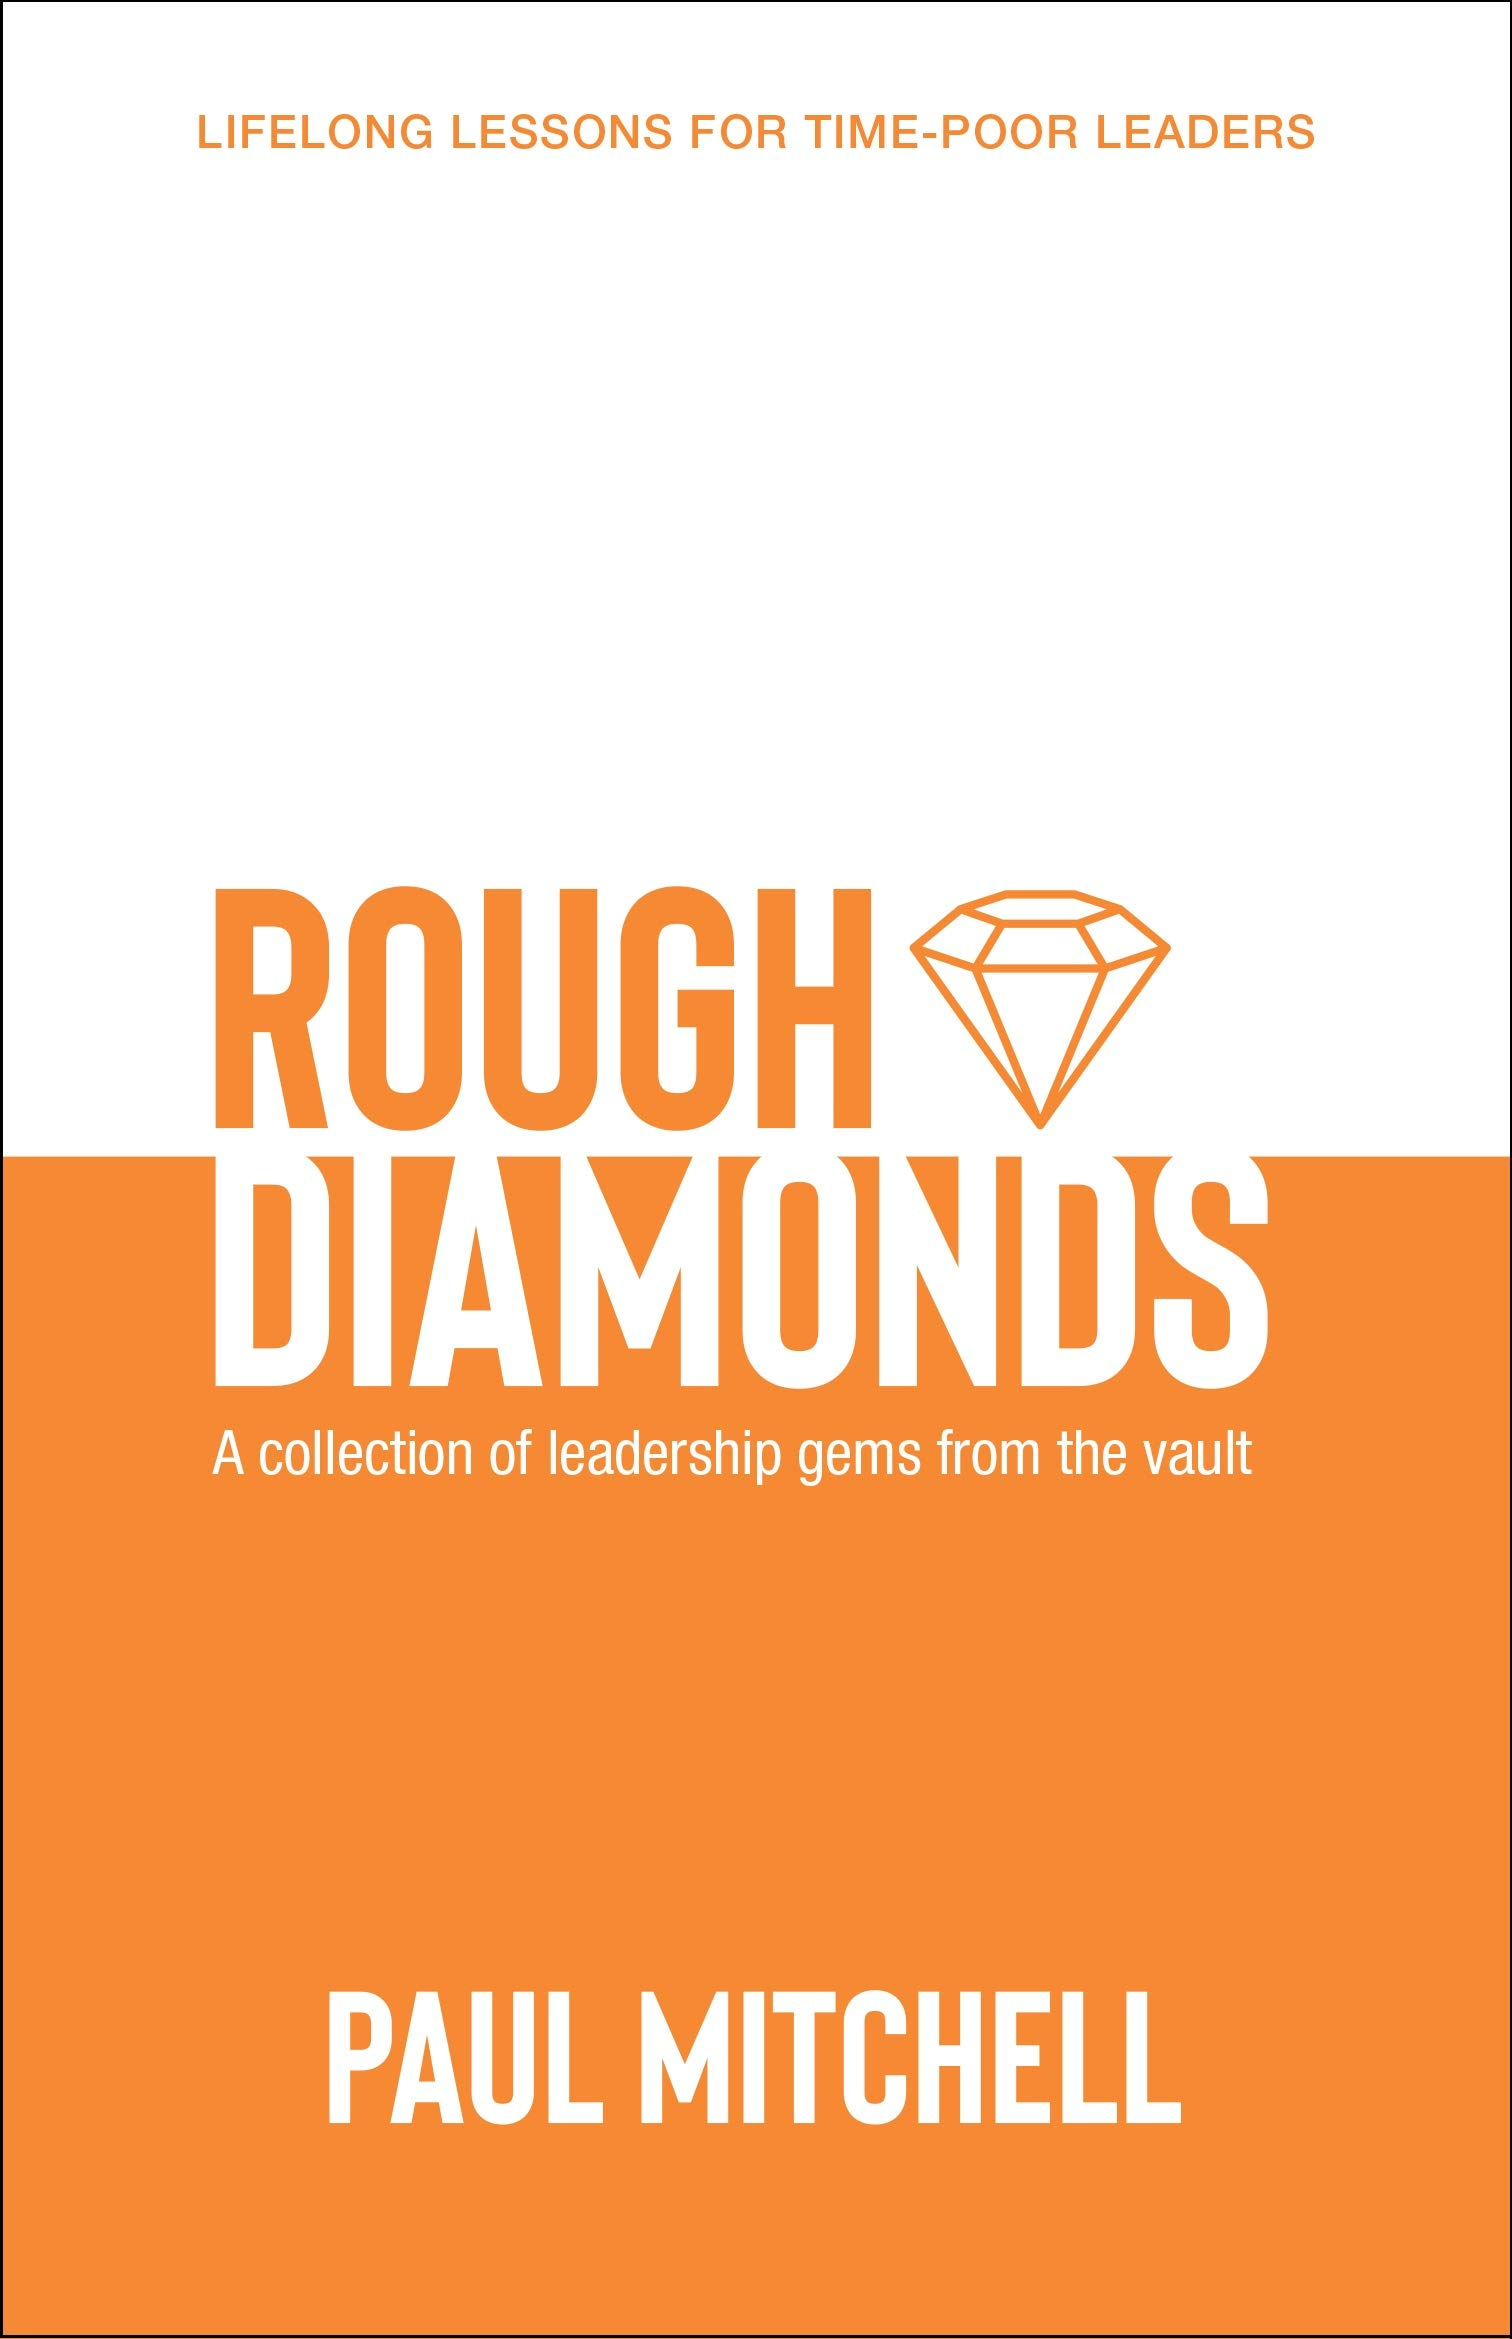 Rough Diamonds: A Collection of Leadership Gems from the Vault